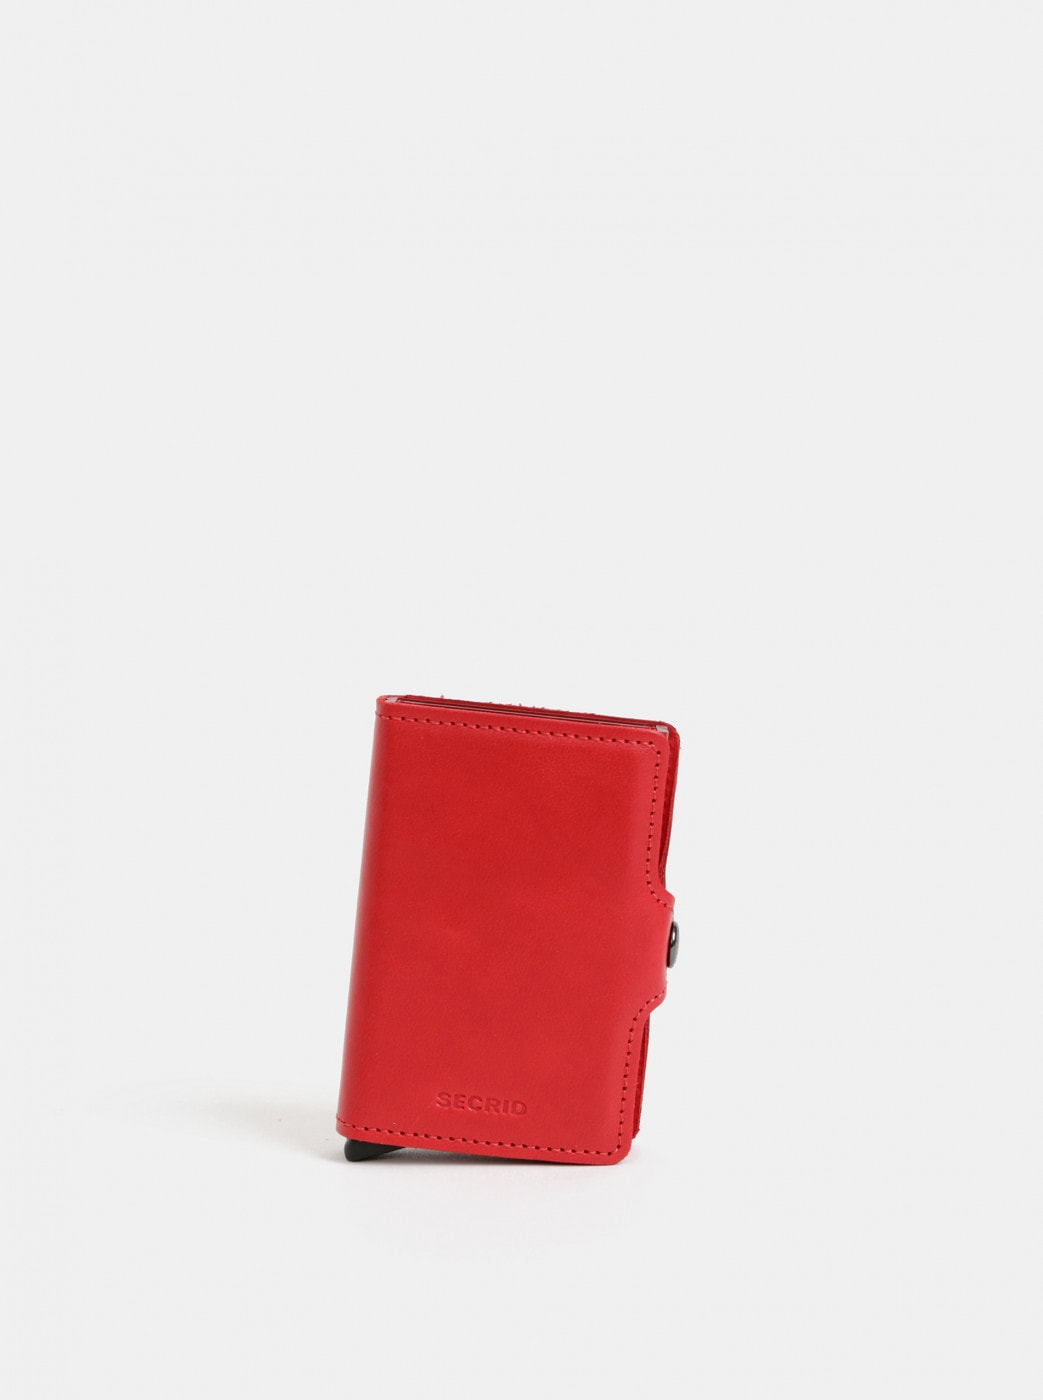 Red Leather Wallet with Secrid Twinwallet Aluminum